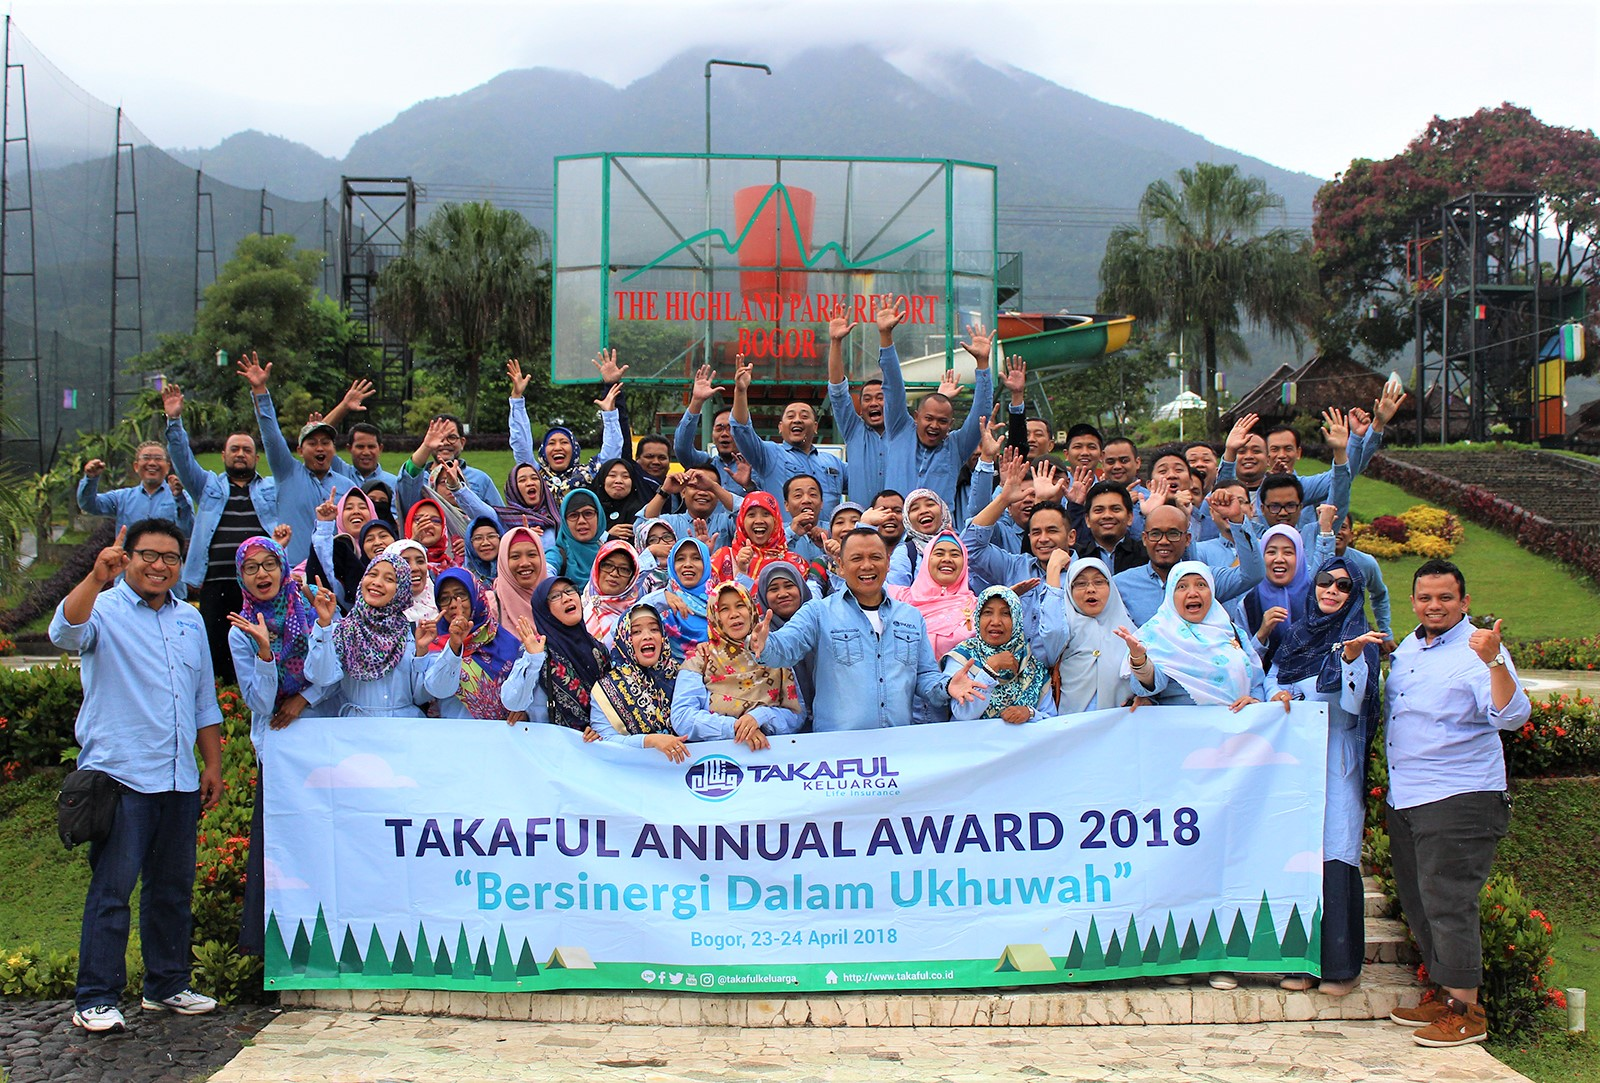 Takaful Annual Award 2018